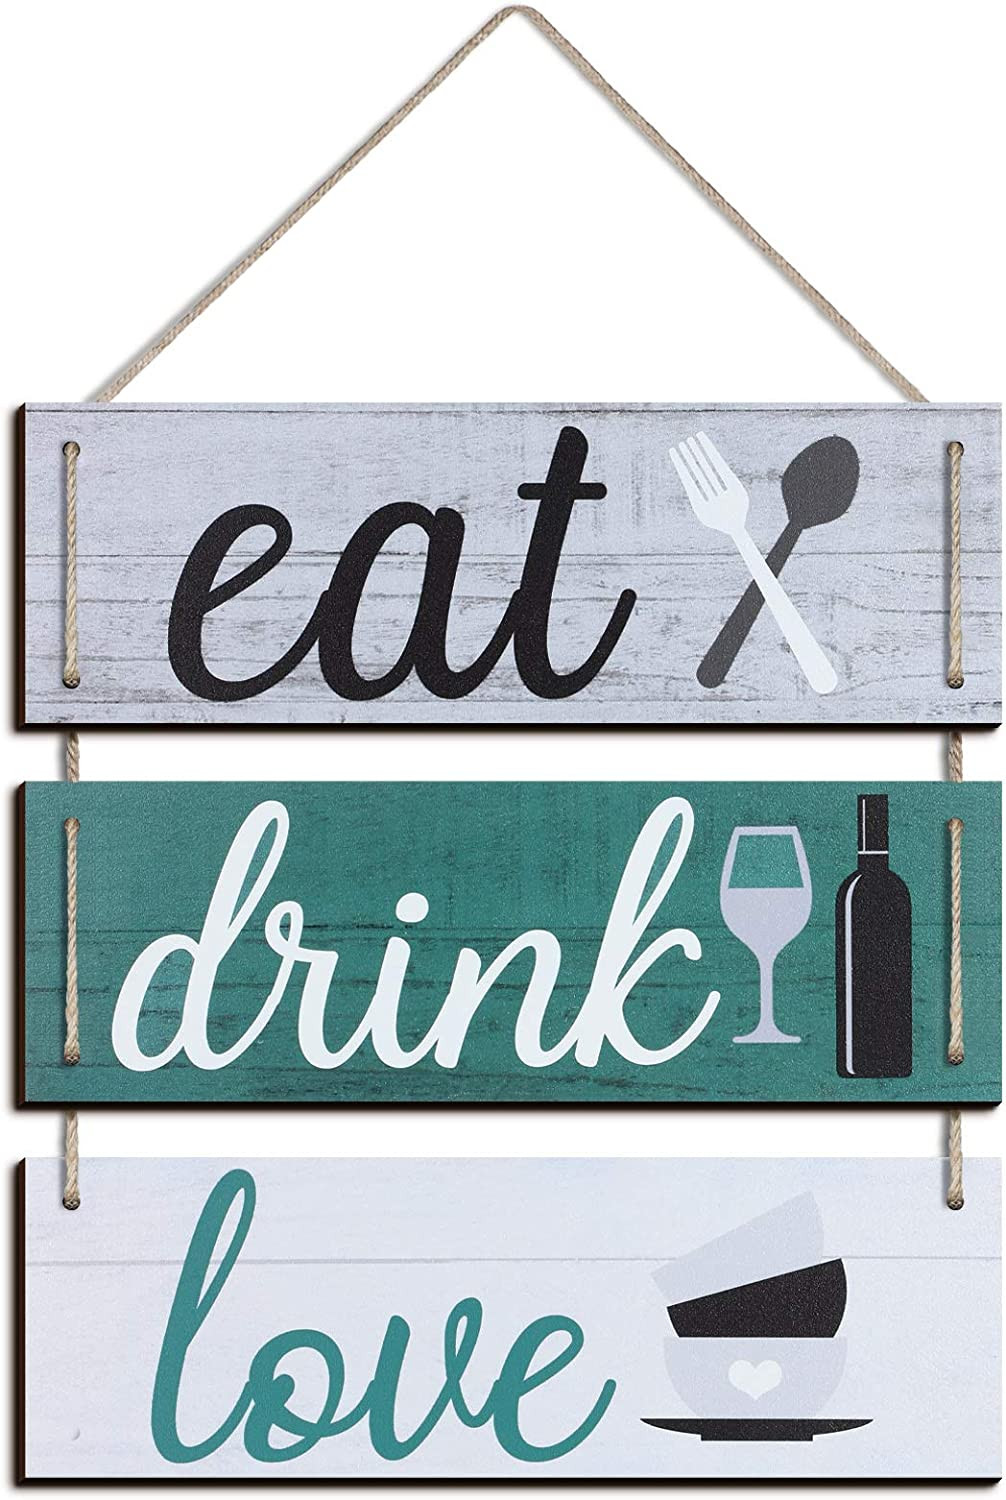 Jetec Eat Drink Love Kitchen Signs Wall Decor Family Hanging Sign Rustic Home Wall Decor Rustic Wood Sign Rustic Wooden Kitchen Wall Decor Bar Rustic Signs Farmhouse Wooden Hanging Wall Sign